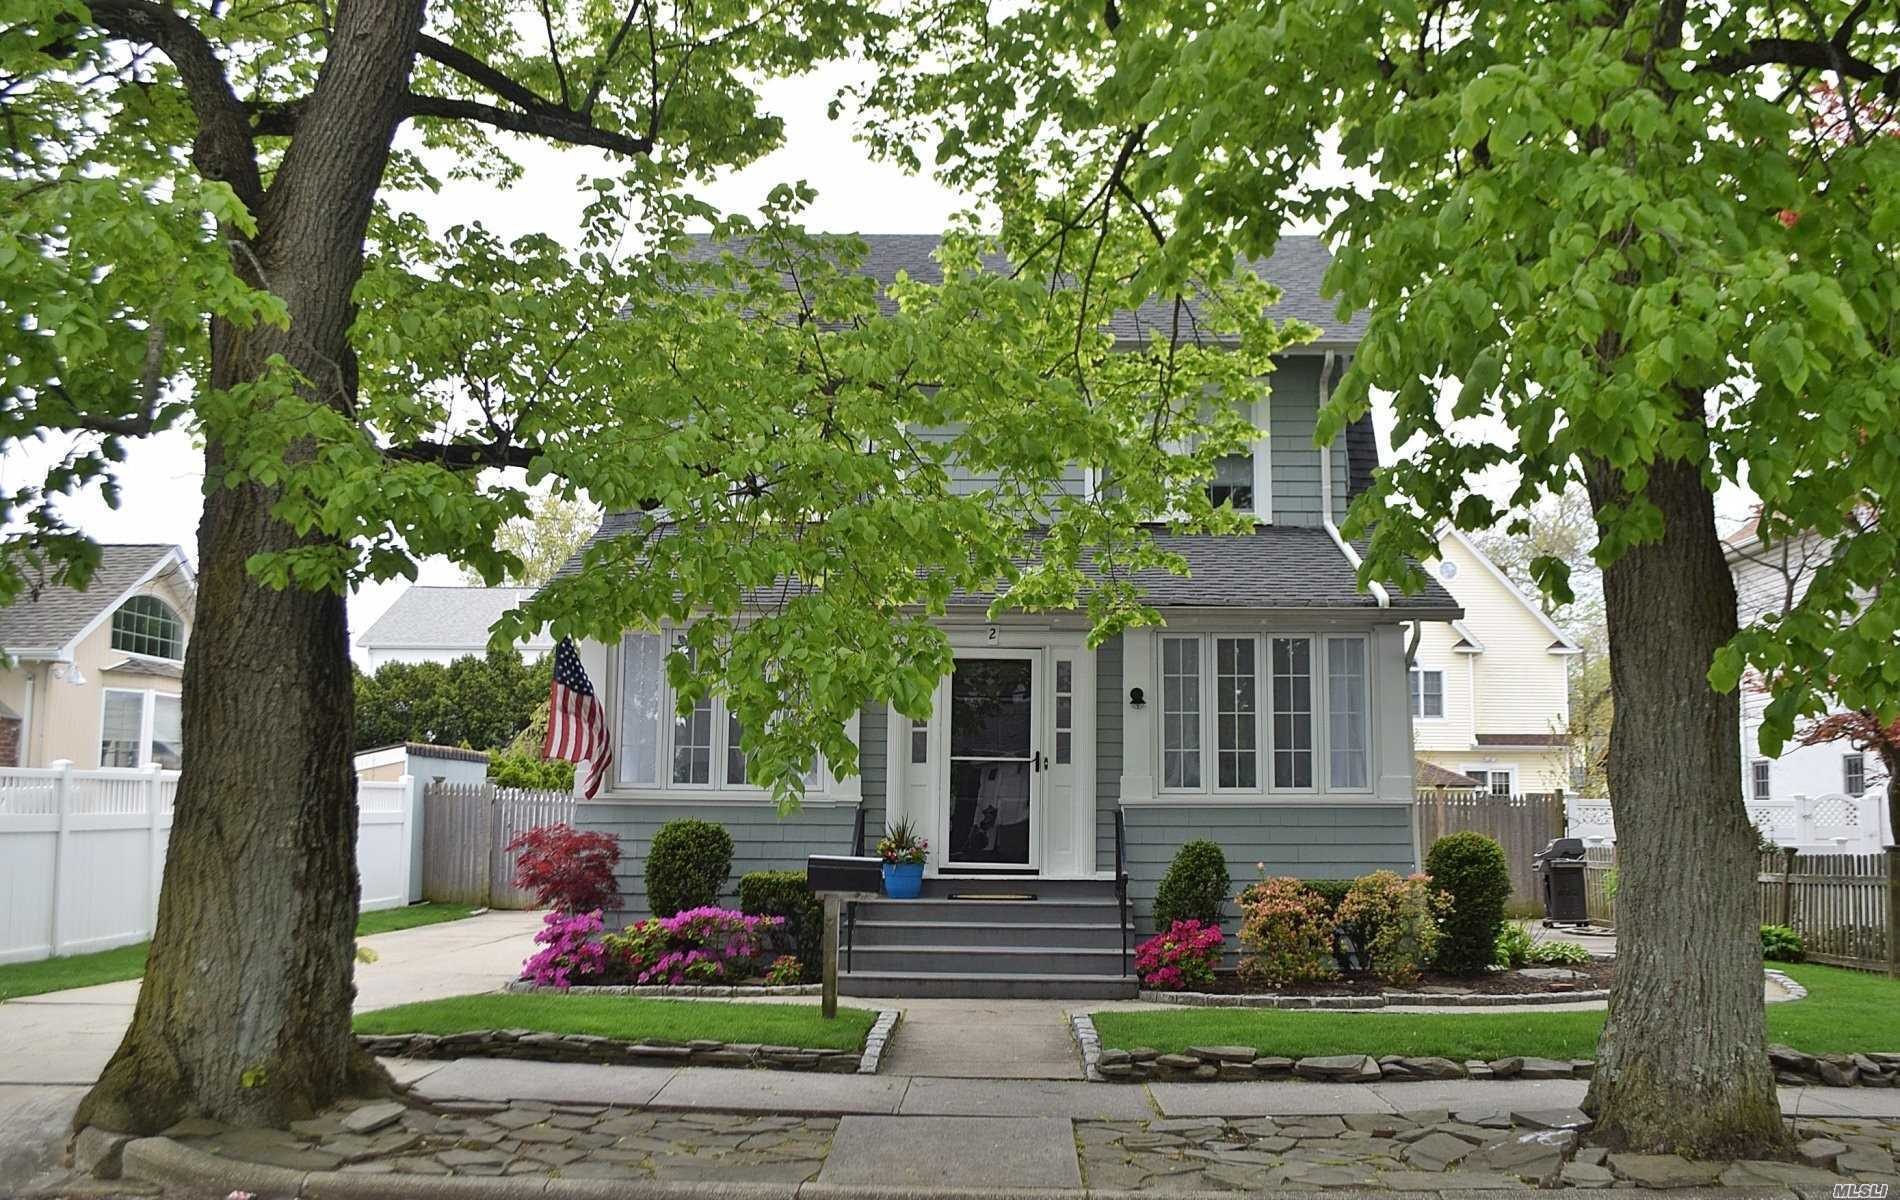 Just move in! Lynbrook SD. Welcoming, enclosed porch w/cathedral ceilings, LR, DR, Lg EIK with a ton of cabinets! Hardwood Floors. 2nd Fl boasts 3 Brs + bath w/entry to walk-up attic. Fin basement w/laundry rm, rec area + office/playroom. OSE to beautiful, fenced-in backyard w/2-car garage. H2O heater + gas boiler replaced late 2018. Approx 12yr roof. Newer windows + 150 amp electric. Walking distance to schools, <10min walk to LIRR, deli, gas, grocery, Movie Theater, Southern State + Belt Pkwy.